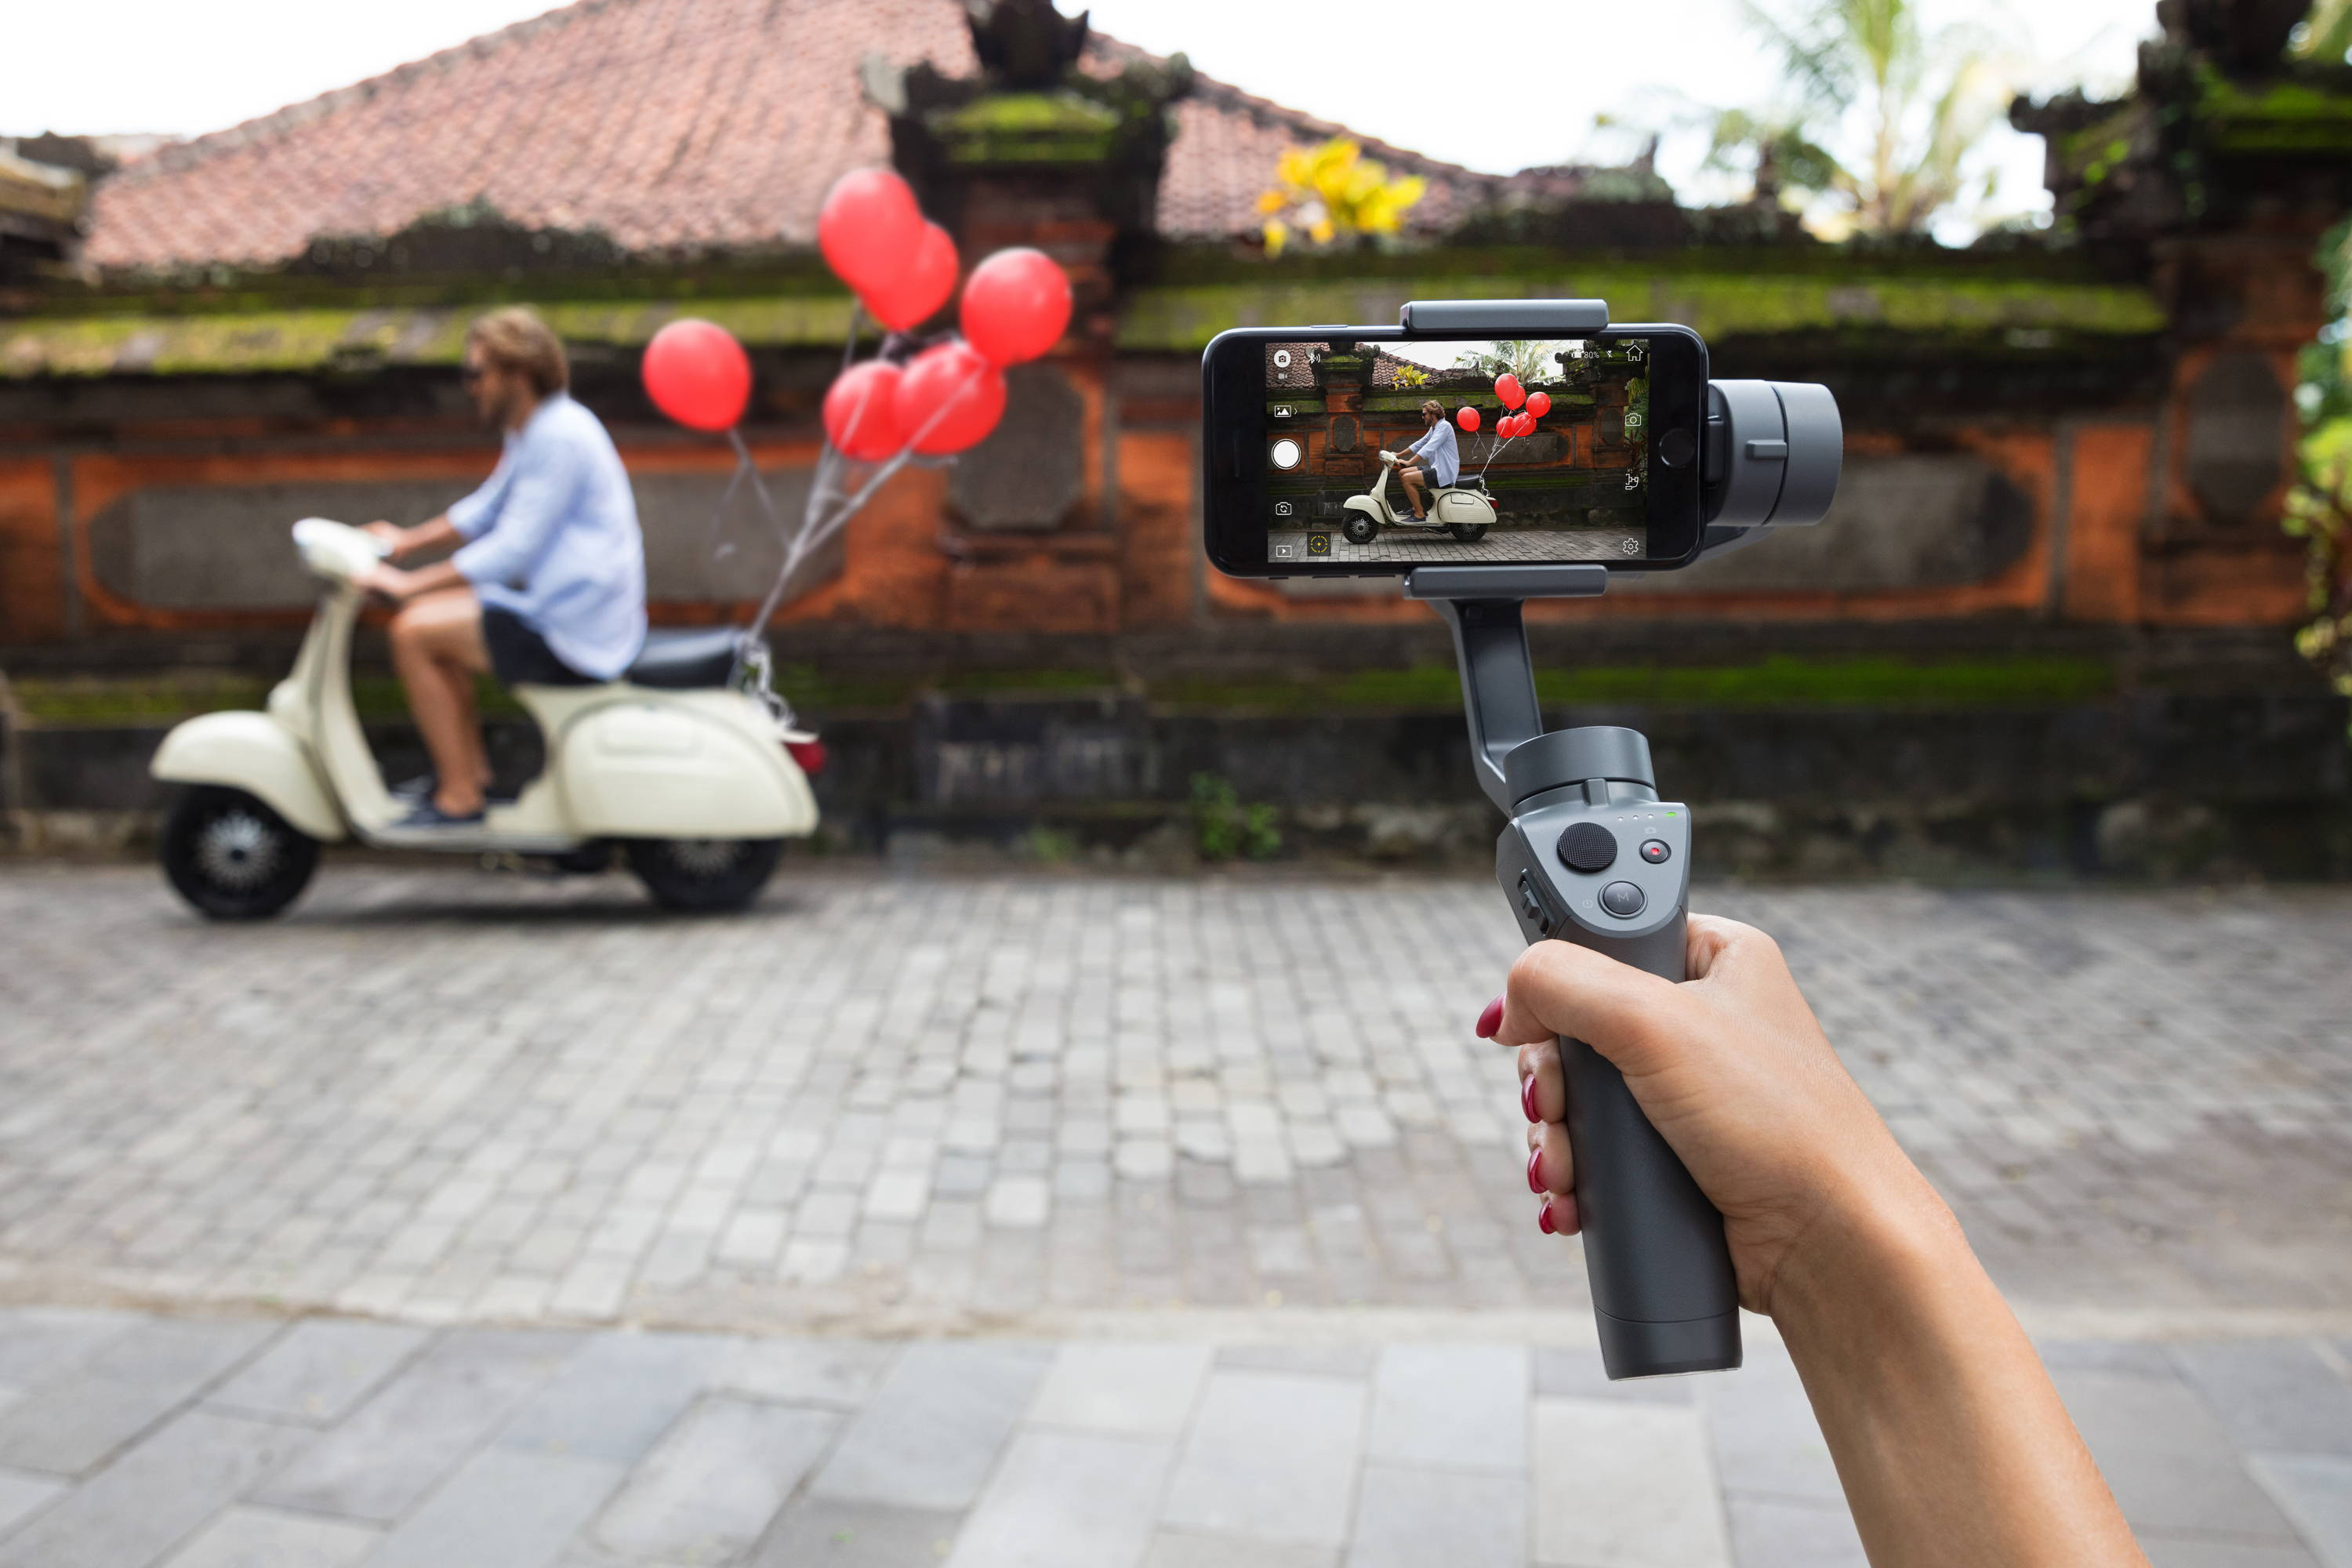 DJI Osmo Mobile 2 - ActiveTrack